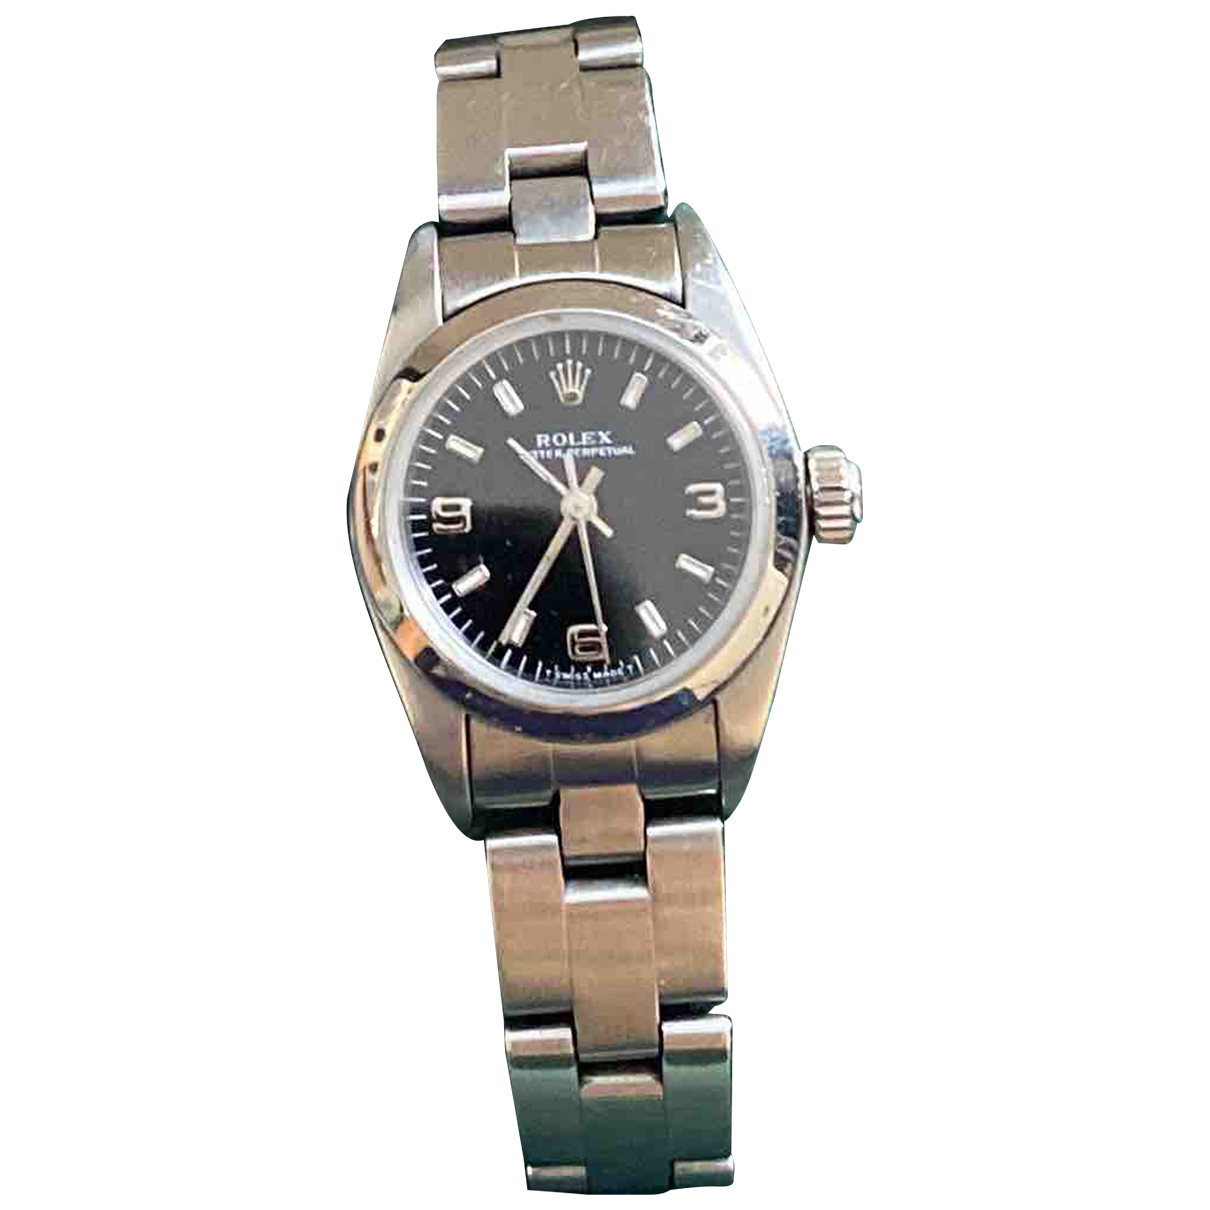 Rolex Lady Oyster Perpetual 26mm Uhr in  Silber Stahl